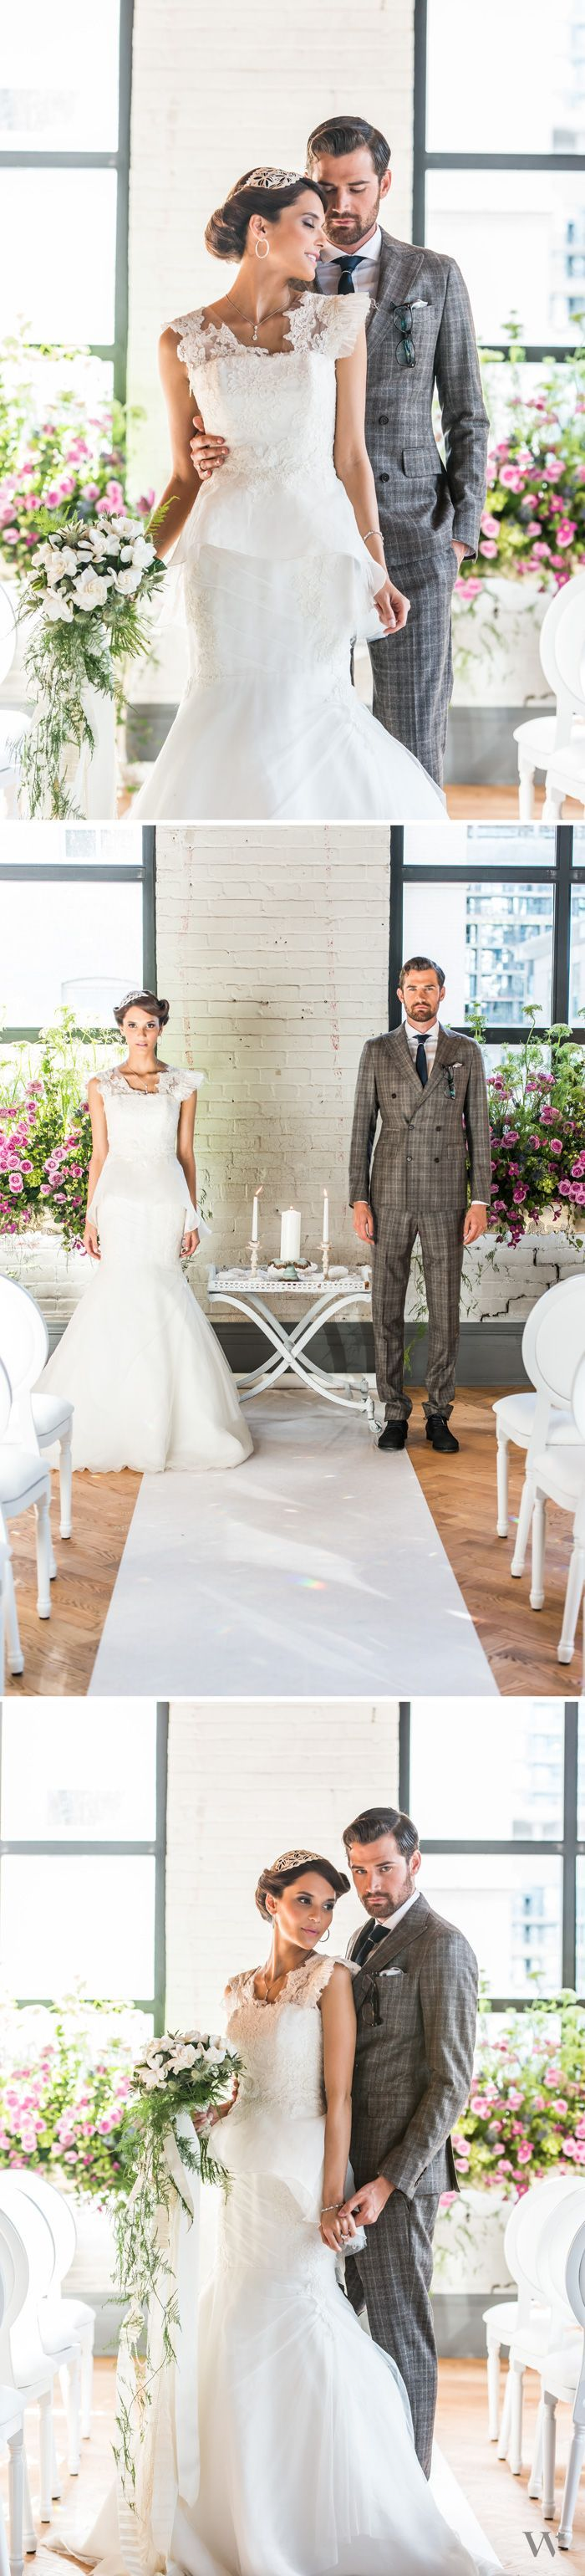 38 best Contemporary Vintage Theme Wedding Inspiration images on ...